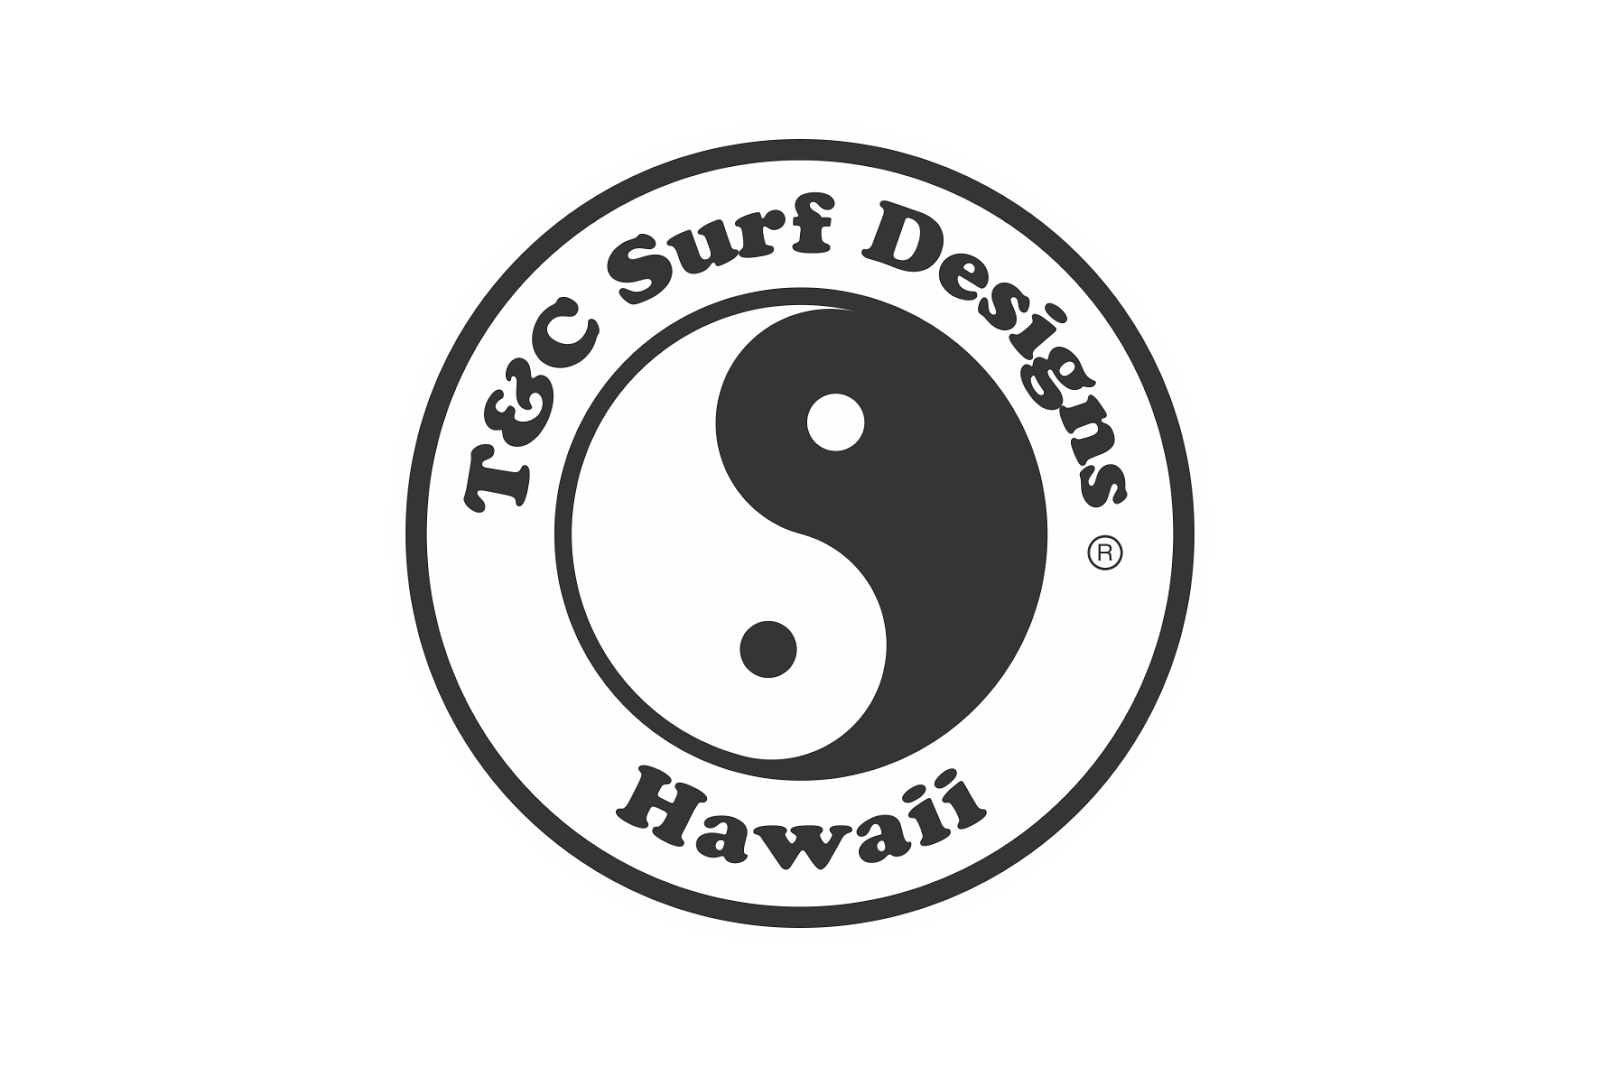 Logo T&C_Surf_Designs